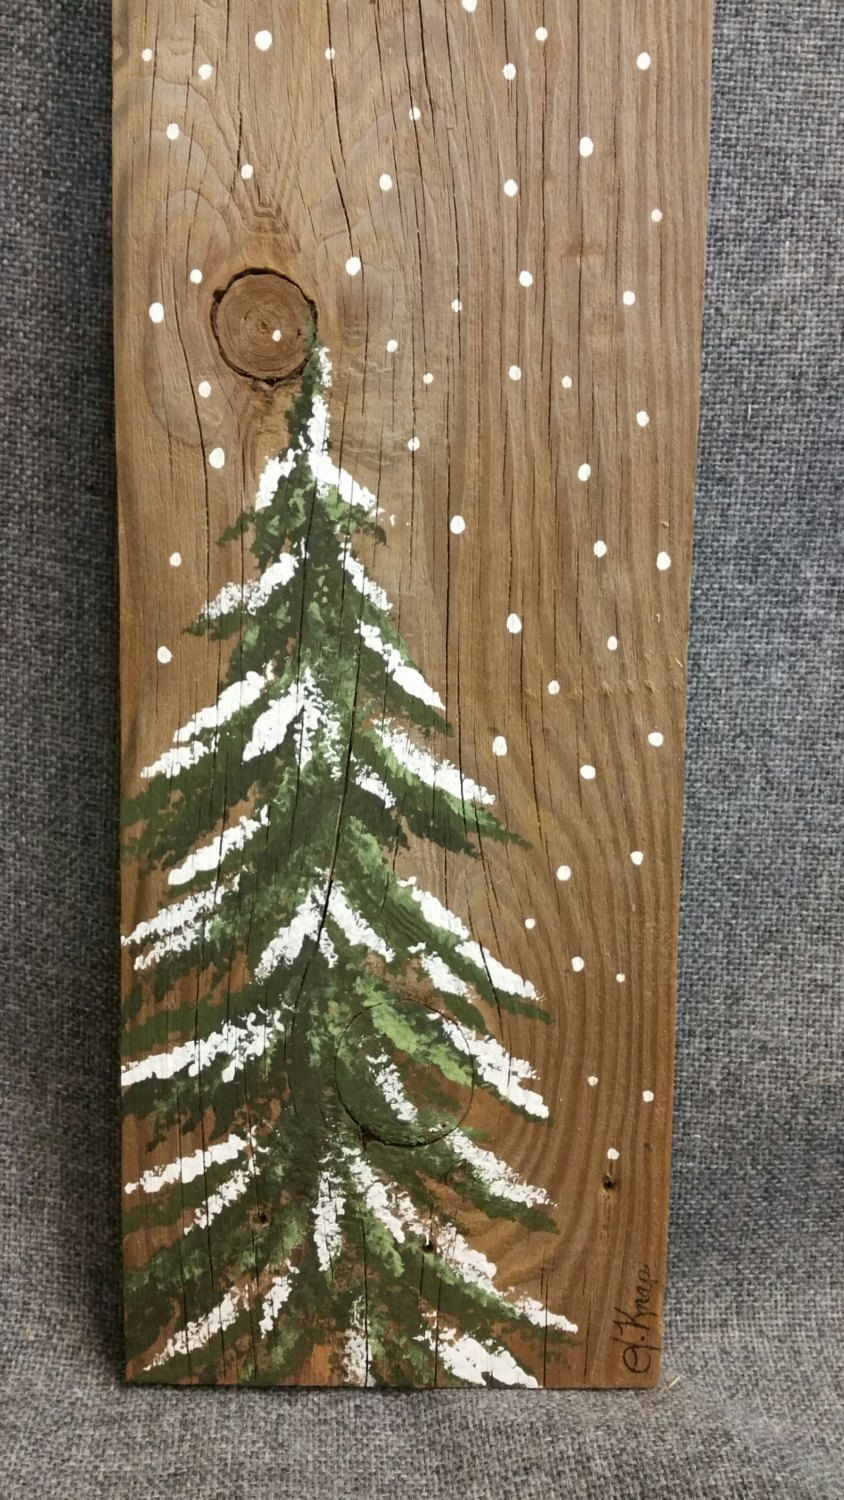 Let It Snow Hand Painted Christmas Decorations Winter Greenery Reclaimed Wood Pallet Art Pine Tree